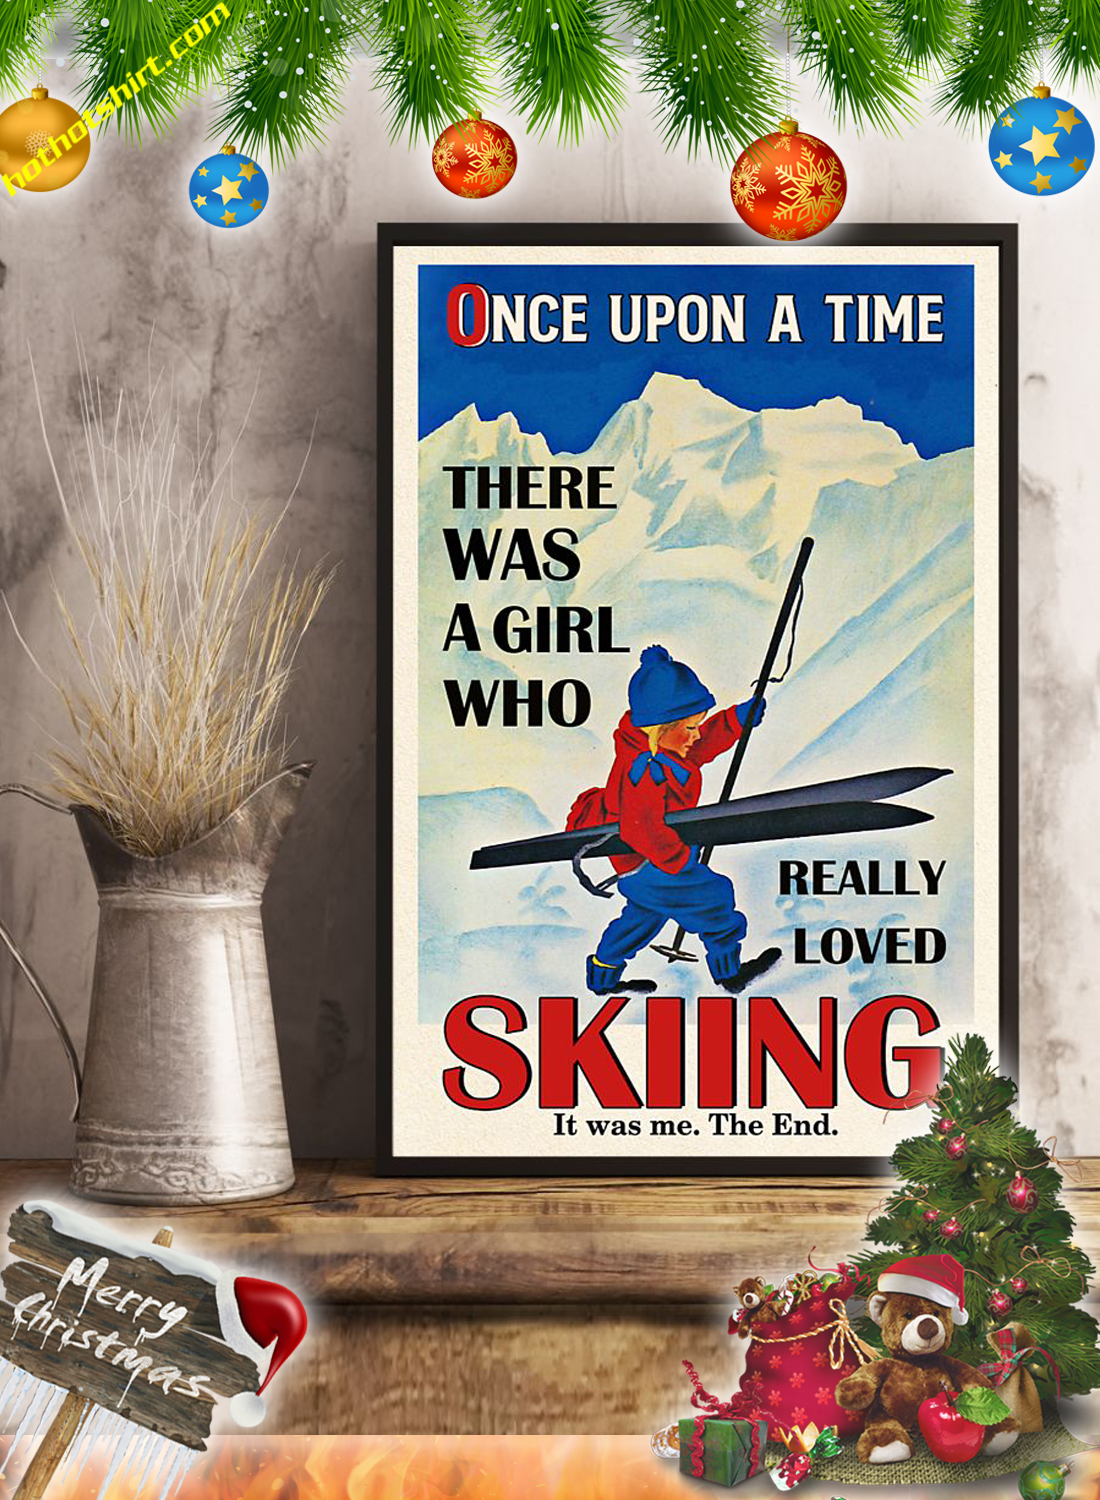 Once upon a time there was a girl loved skiing poster 1